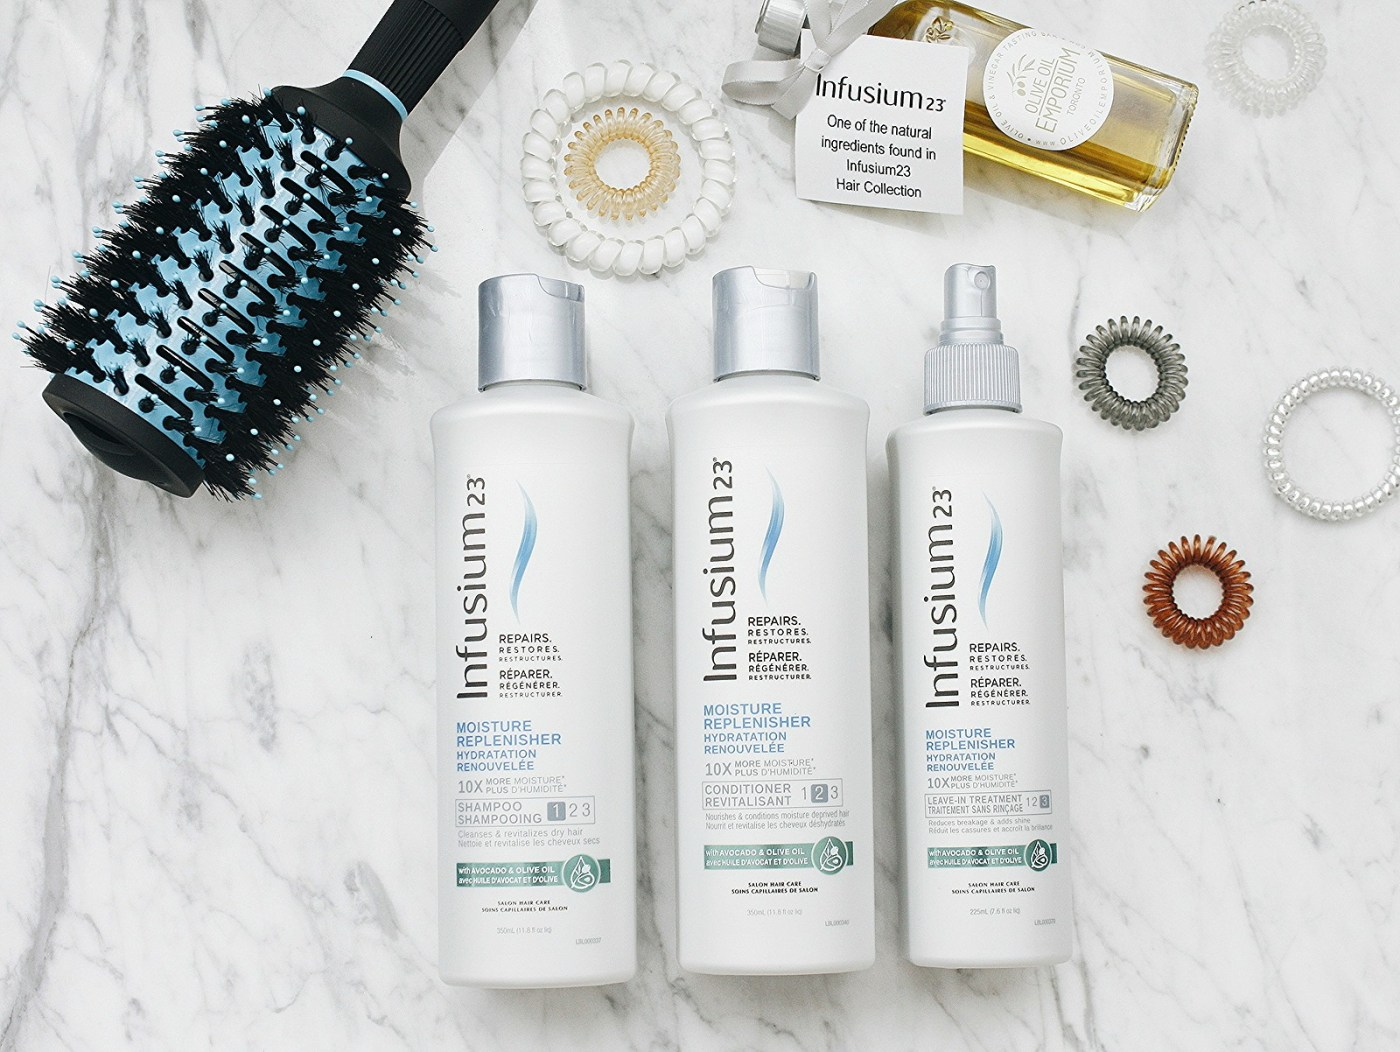 SUMMER HAIR WITH INFUSIUM23 MOISTURE REPLENISHER LINE